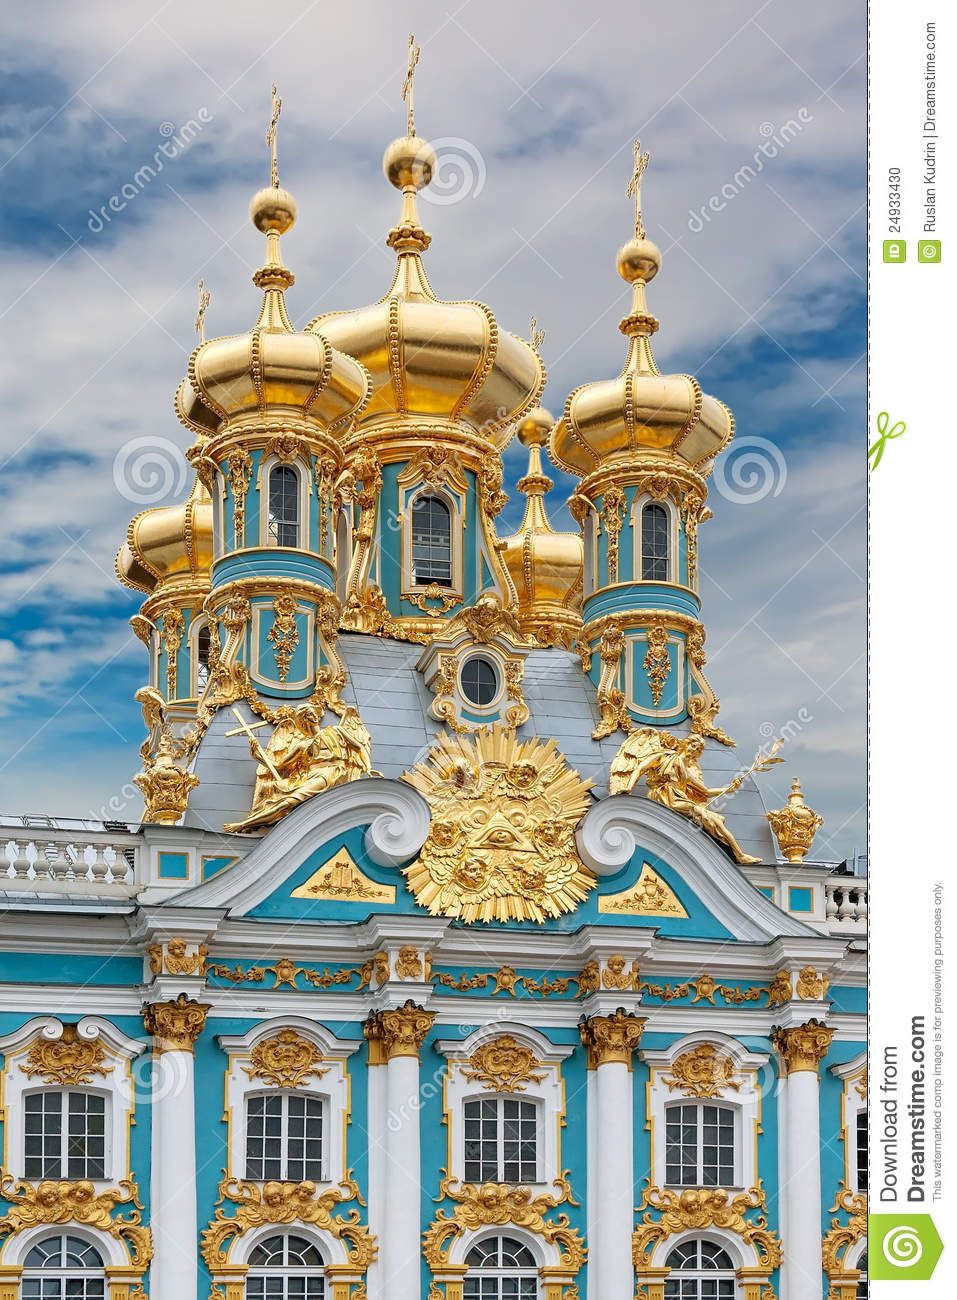 Catherines Palace In Tsarskoe Selo Russia Stock Photo  Image 24933430